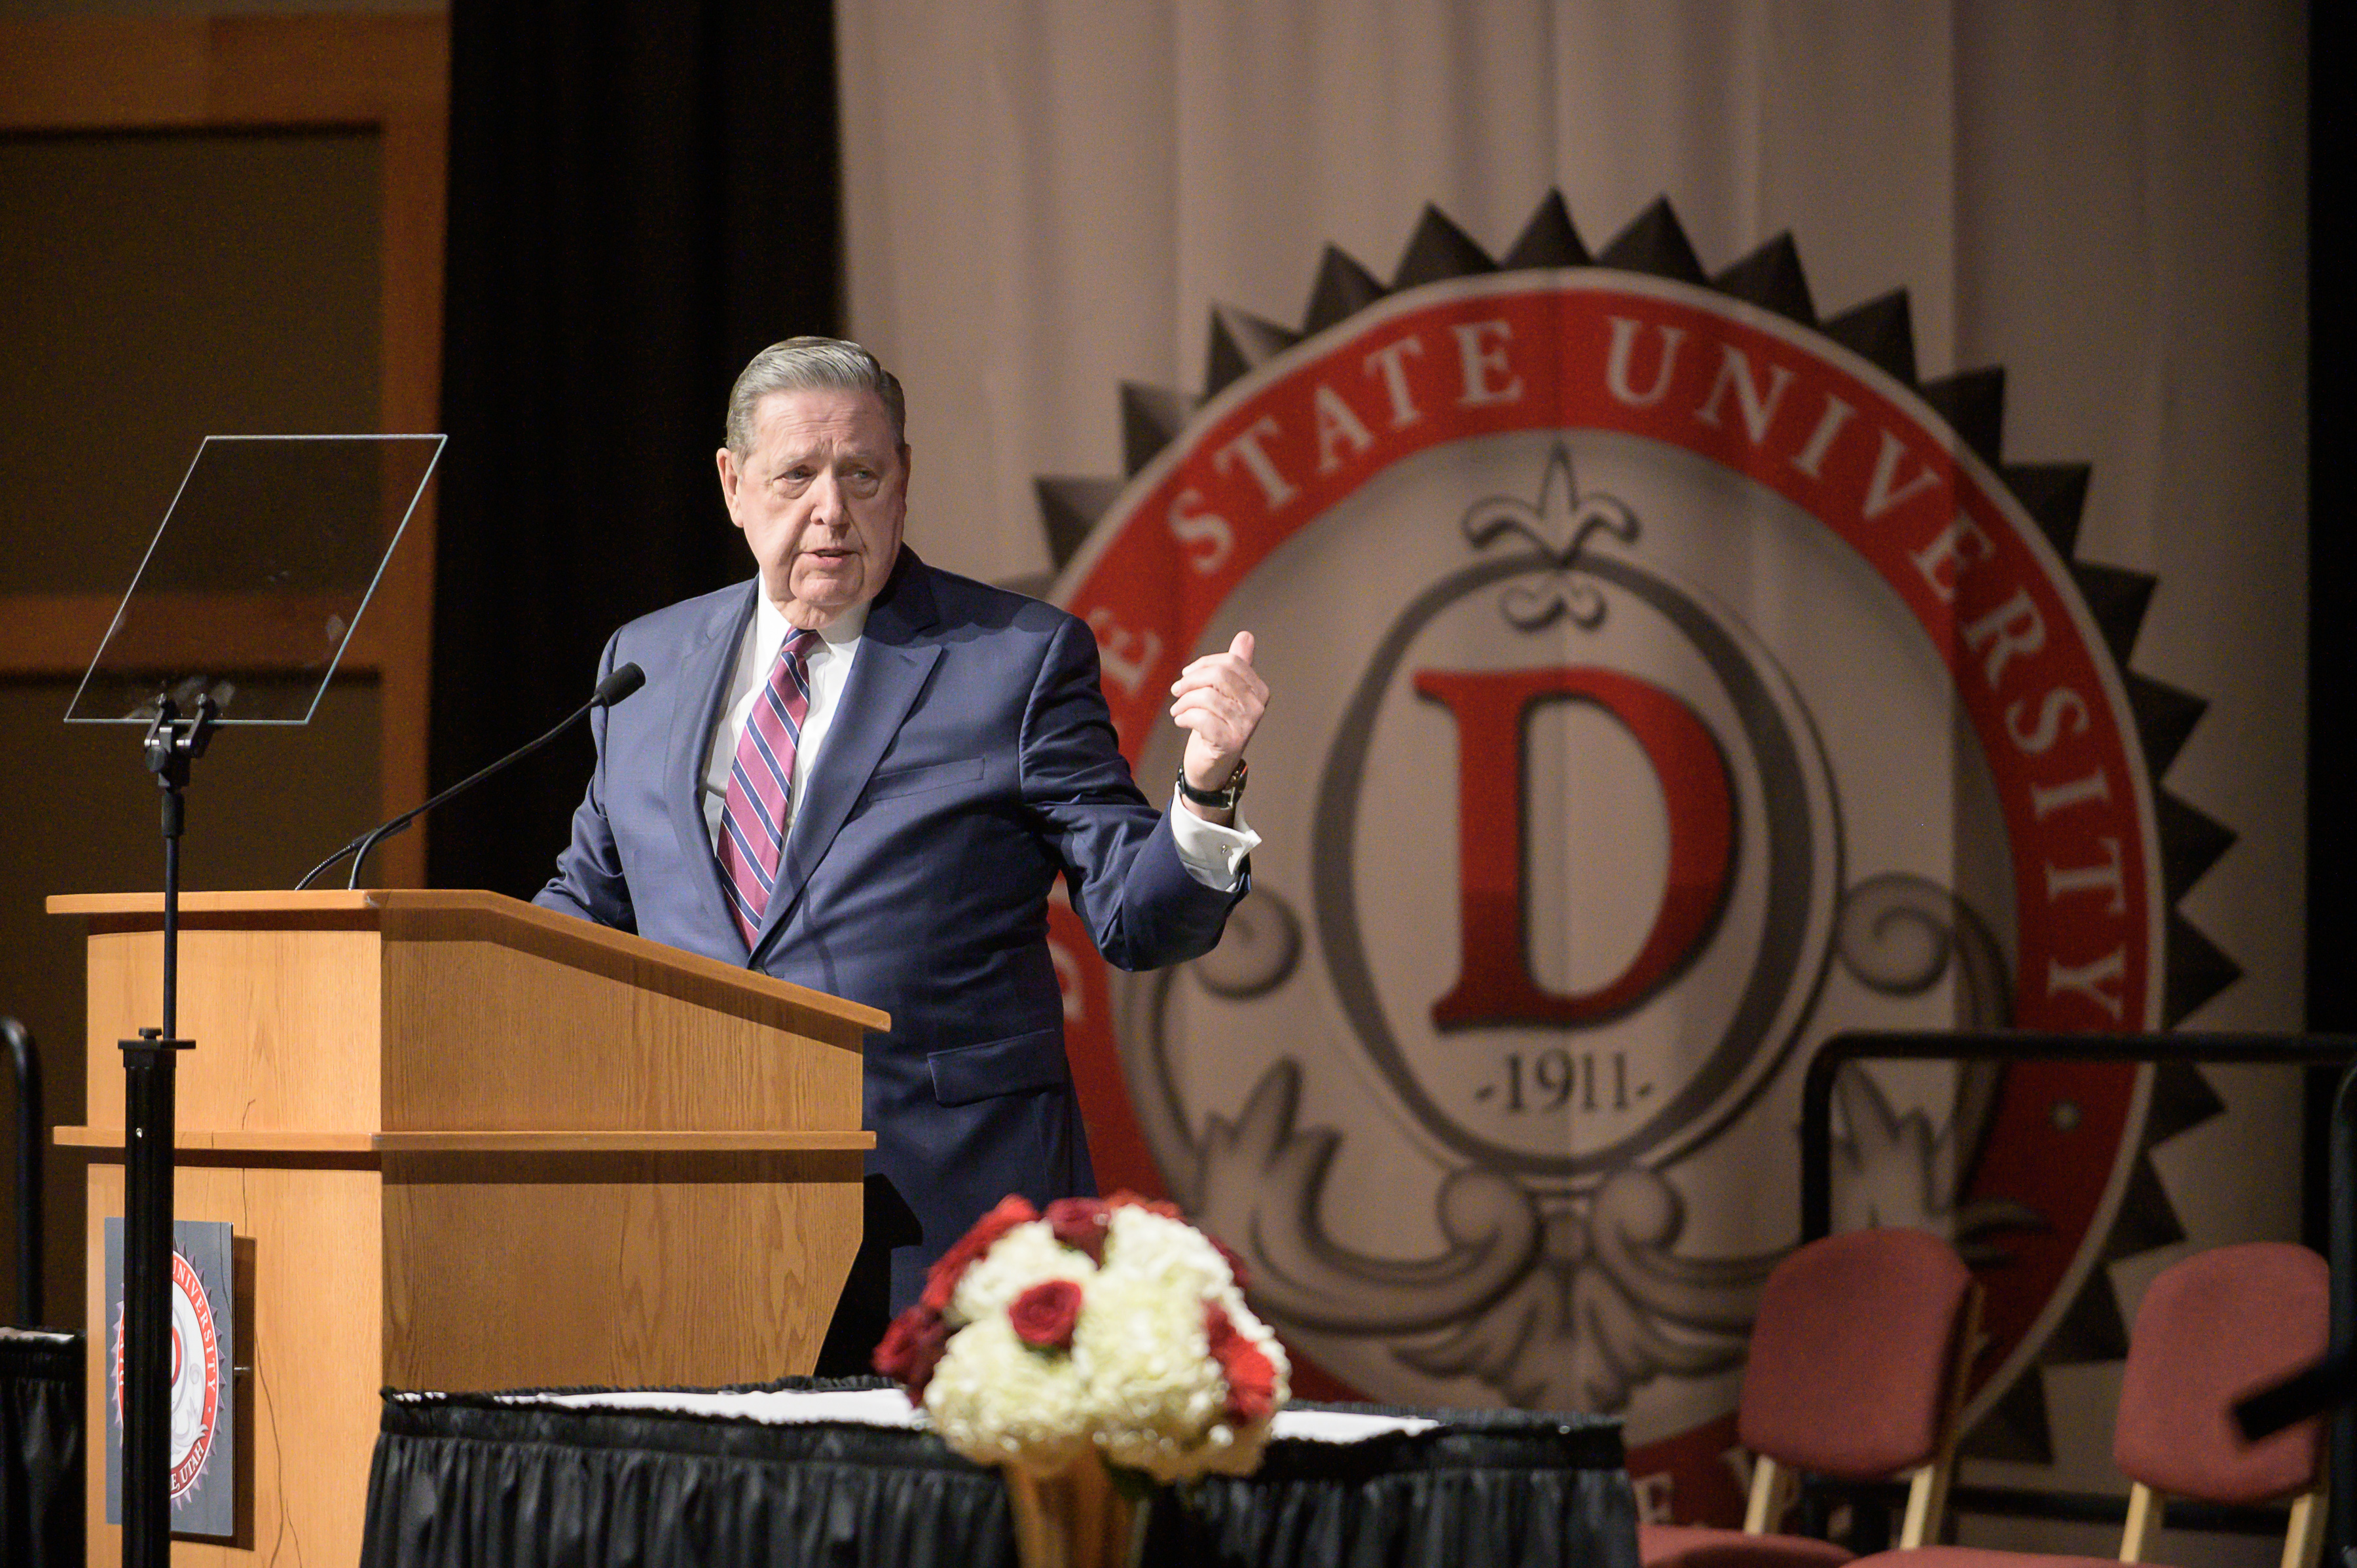 Elder Jeffrey R. Holland, a member of the Quorum of the Twelve Apostles of The Church of Jesus Christ of Latter-day Saints, speaks at the Dixie State University Alumni Banquet Friday, Oct. 25, 2019, in St. George.